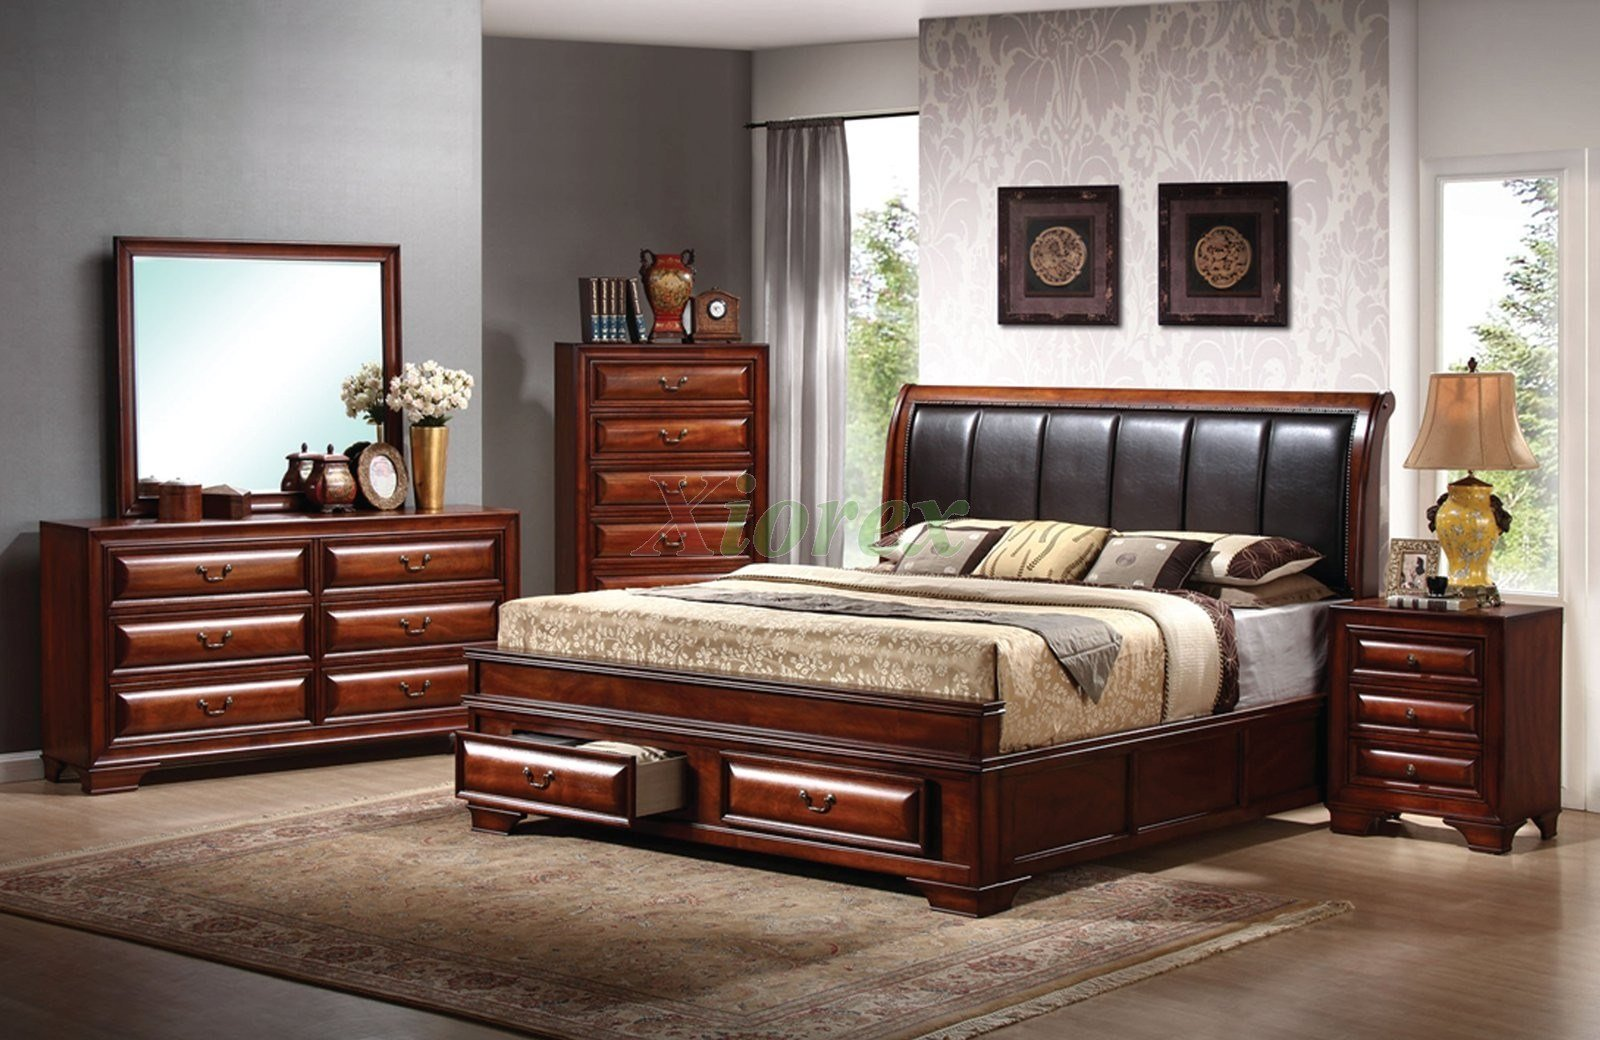 Best Platform Bedroom Furniture Set With Leather Headboard Beds With Pictures